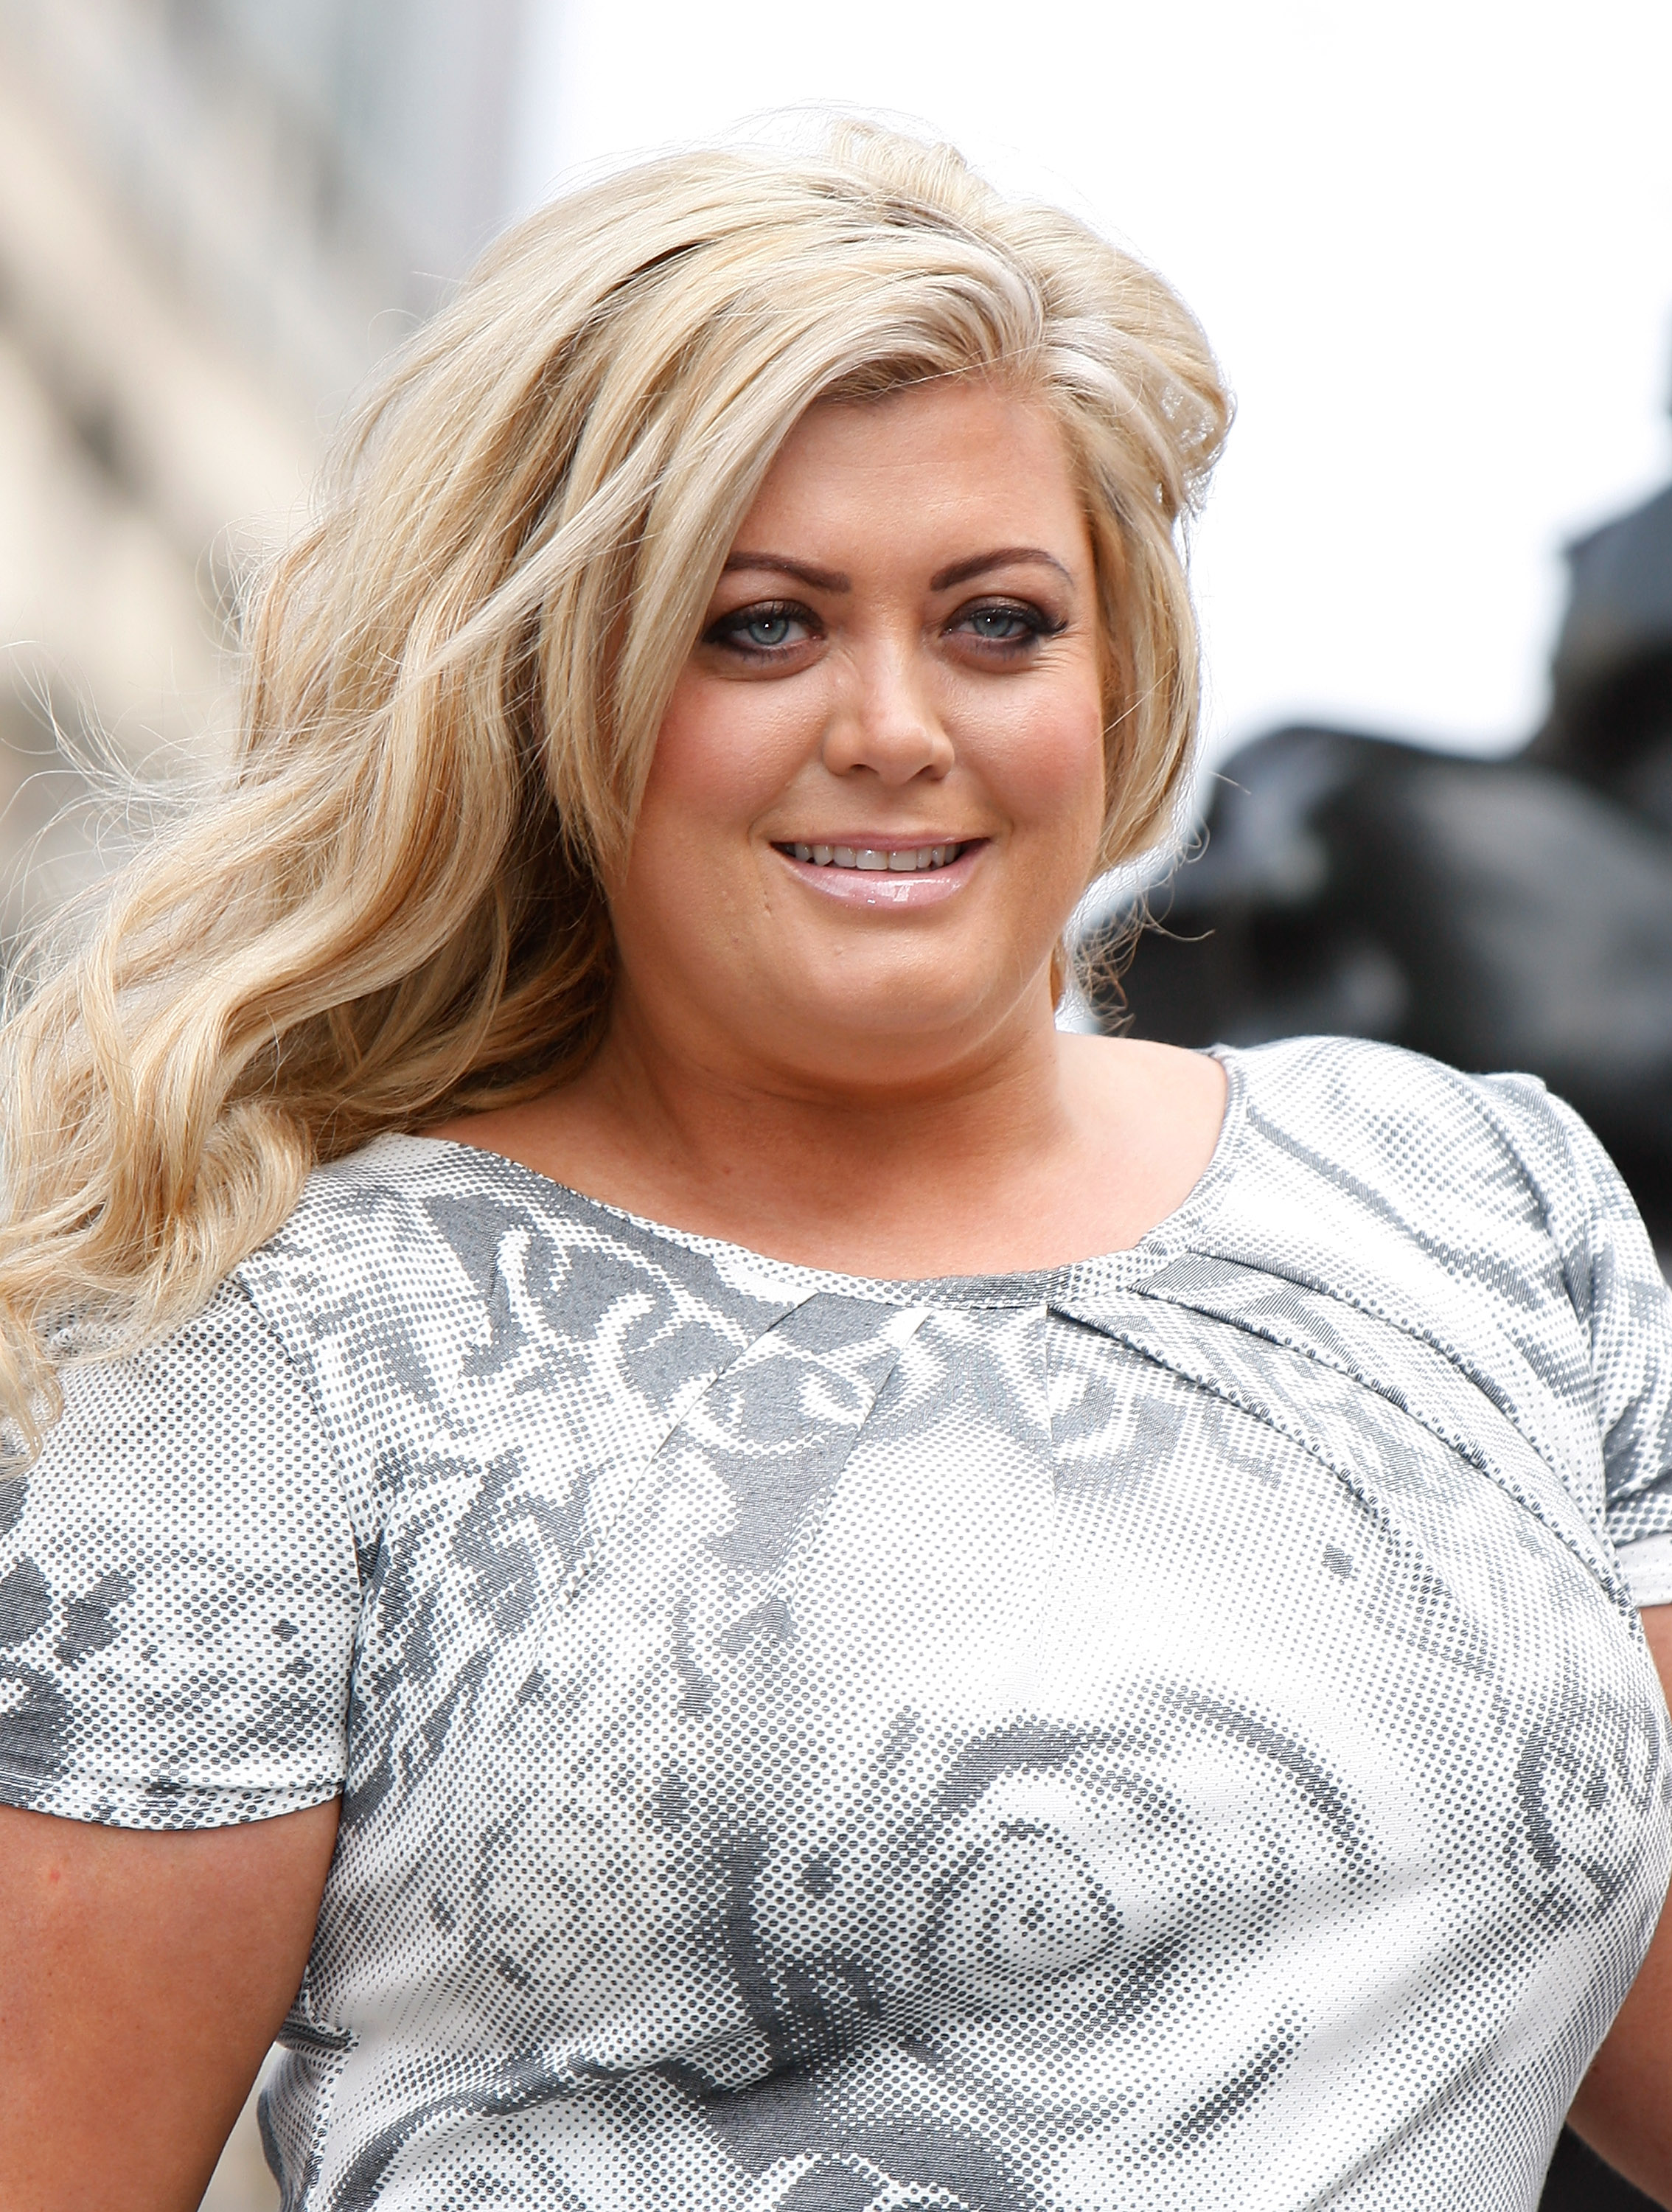 TOWIE star Gemma Collins